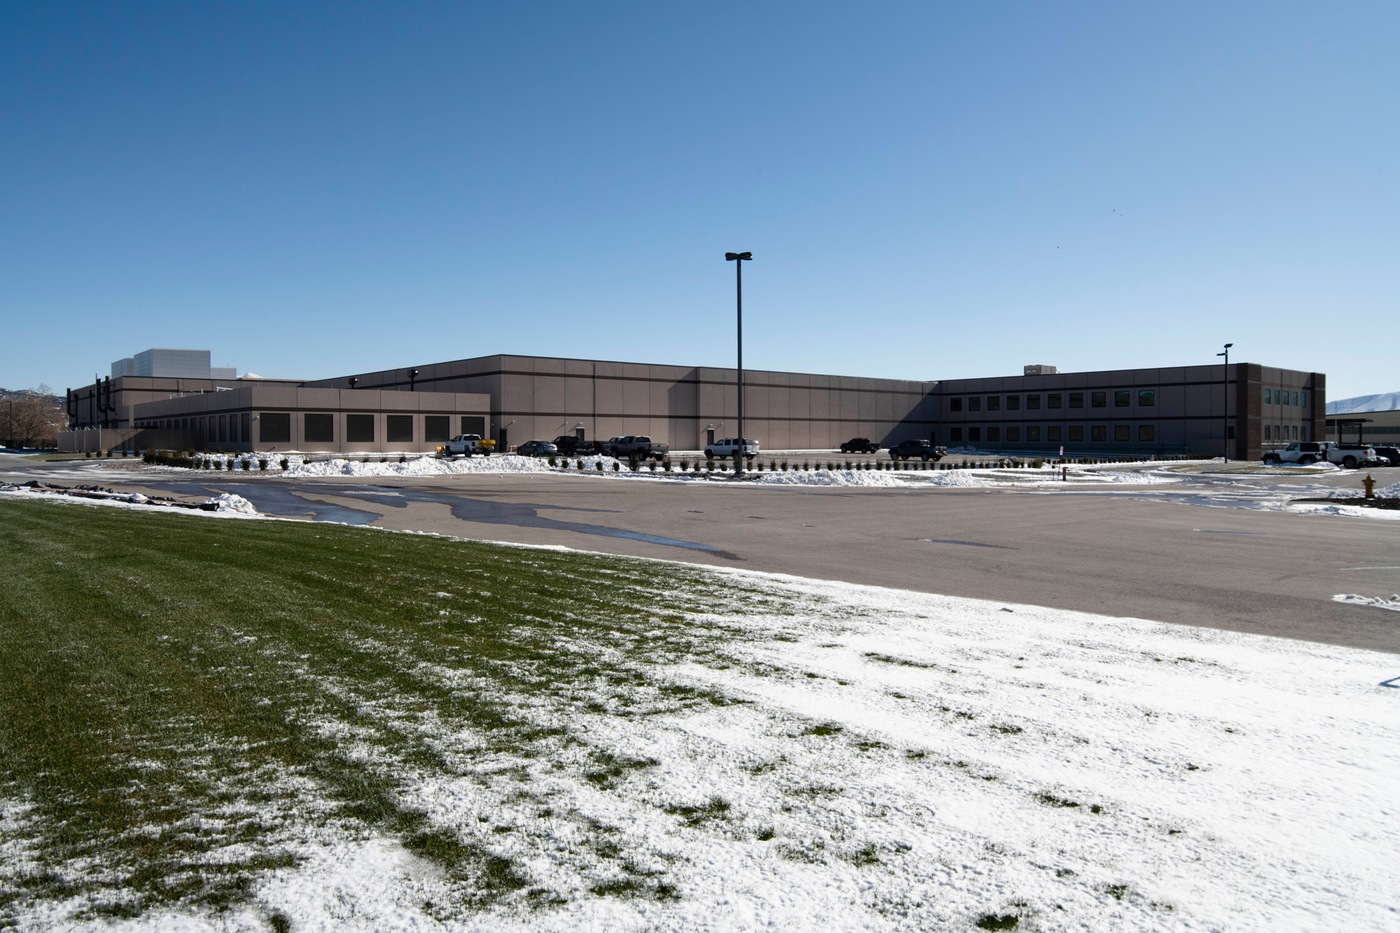 Exterior side view of the FBI's facility in Pocatello, Idaho, where a ribbon-cutting ceremony for its new data center was held November 18, 2019.